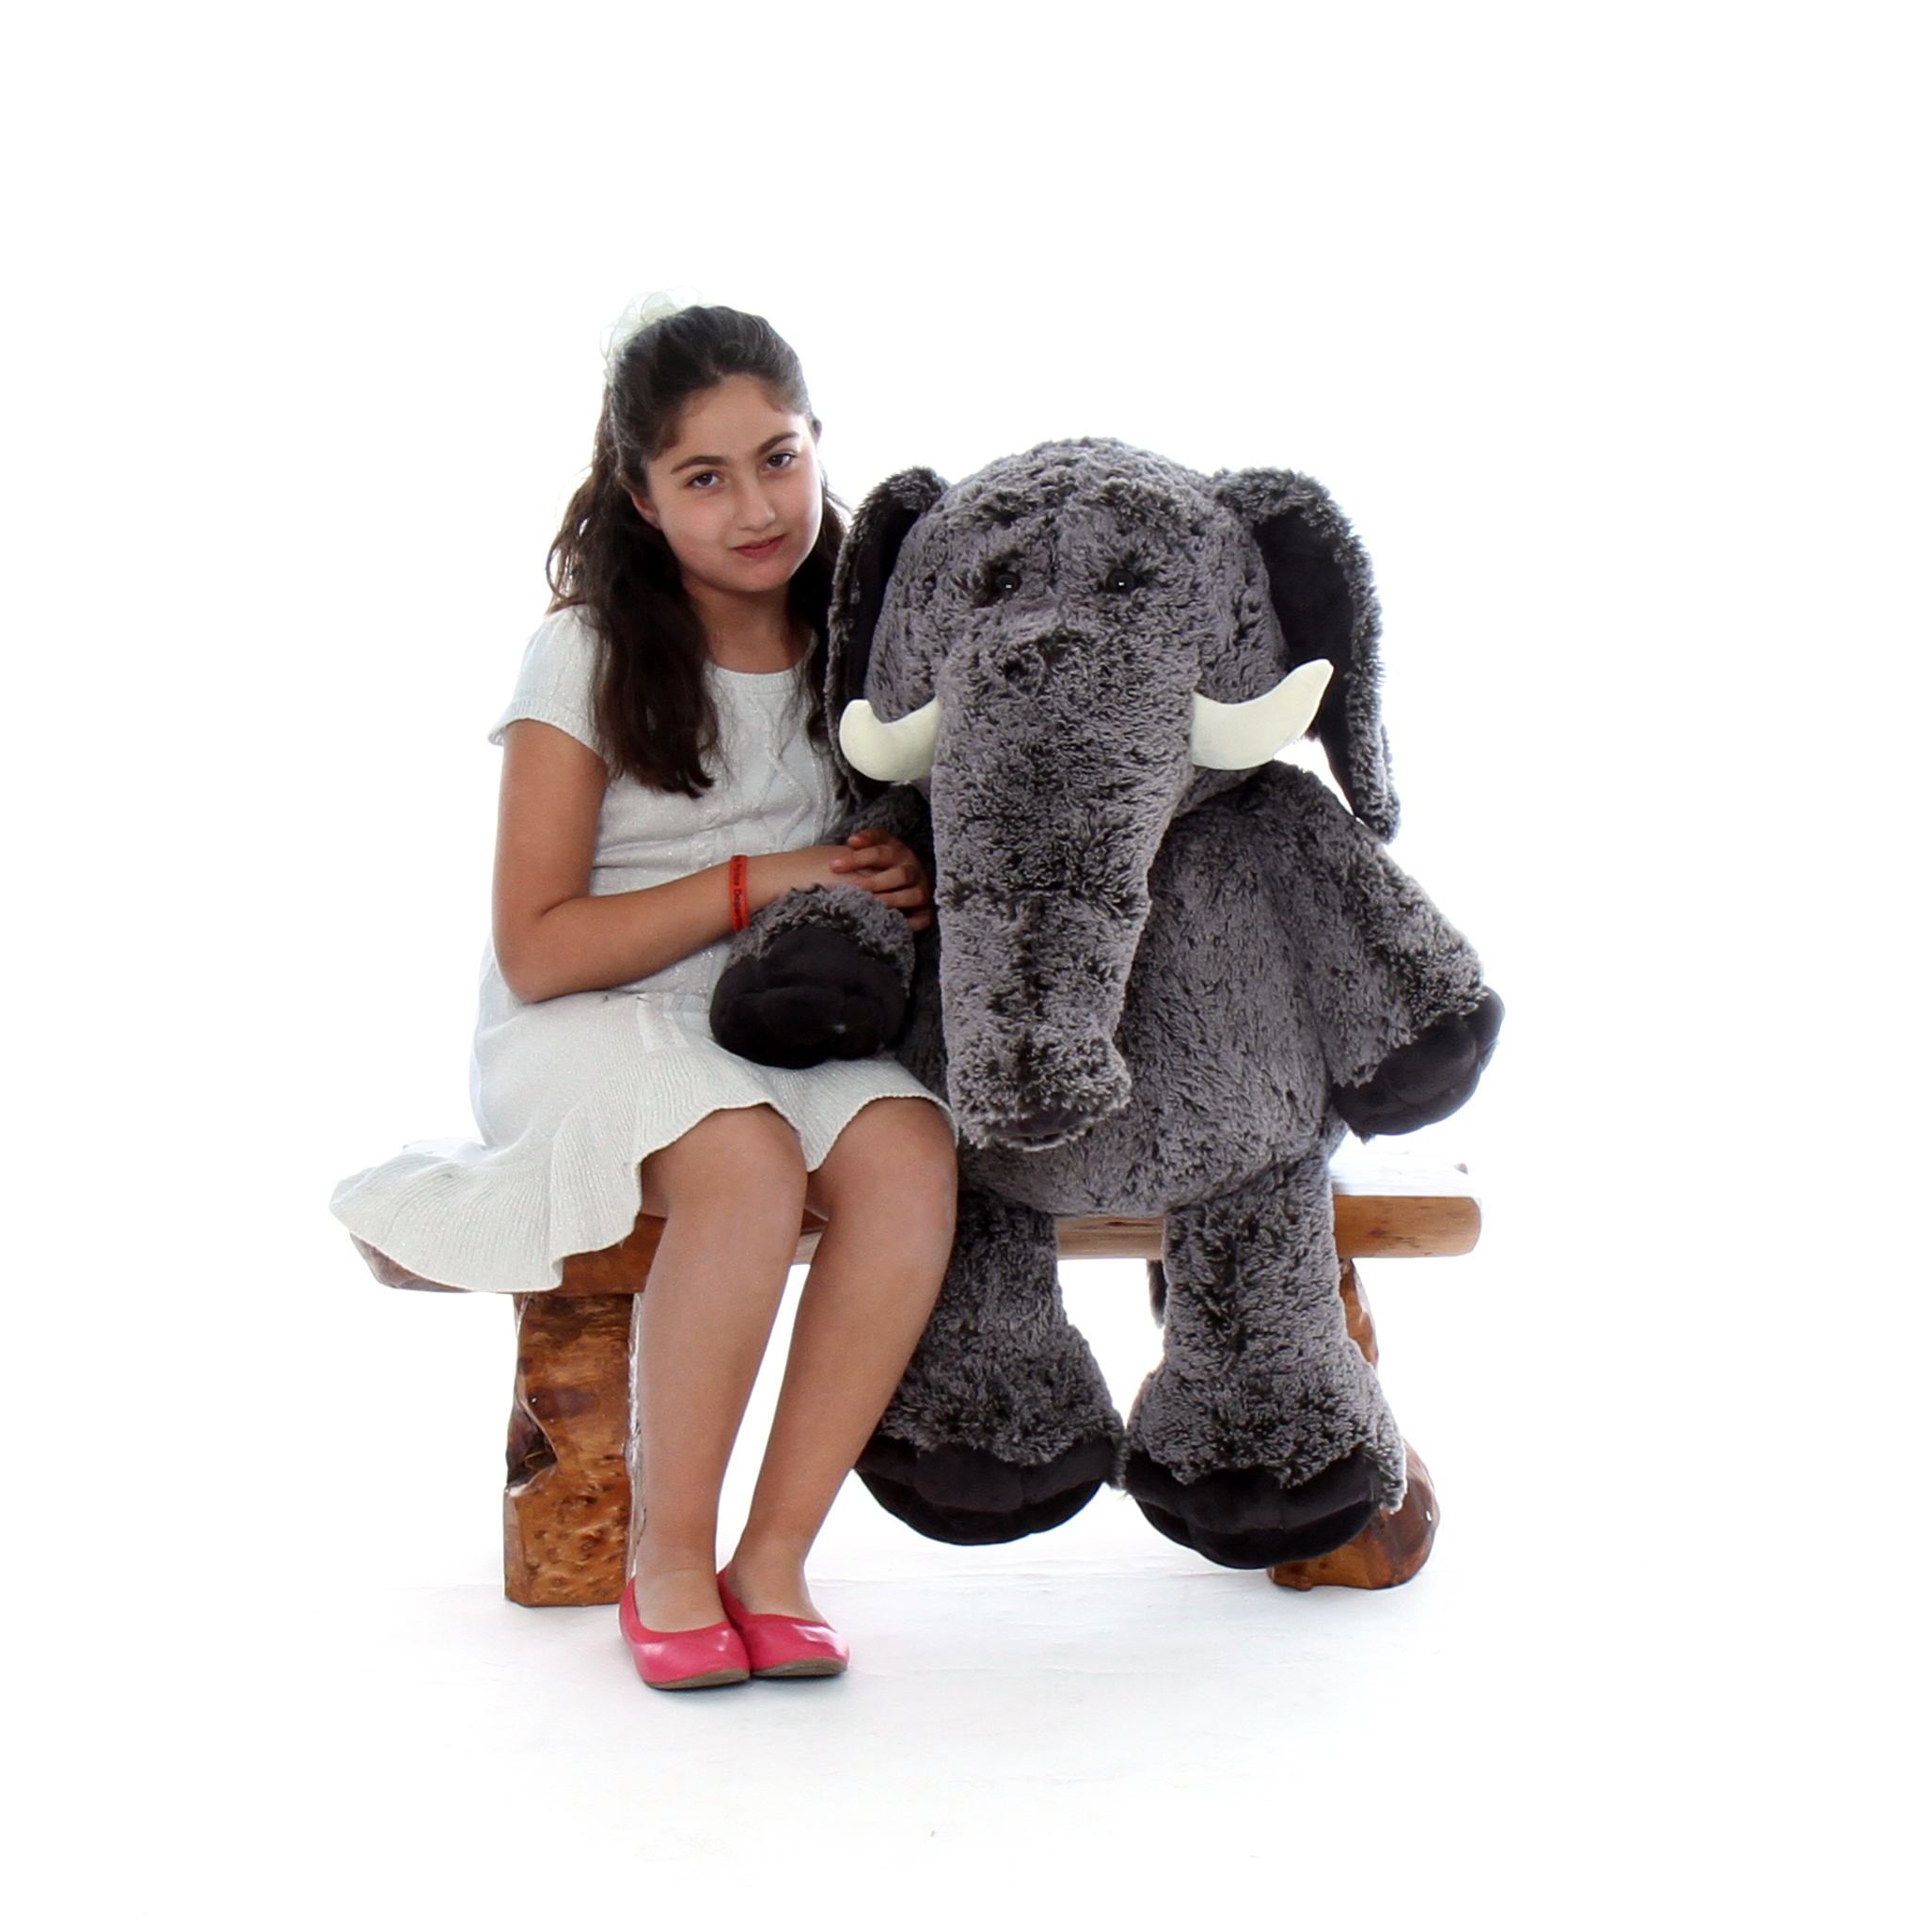 3ft-elephant-great-gift-for-boys-and-girl-of-any-age.jpg